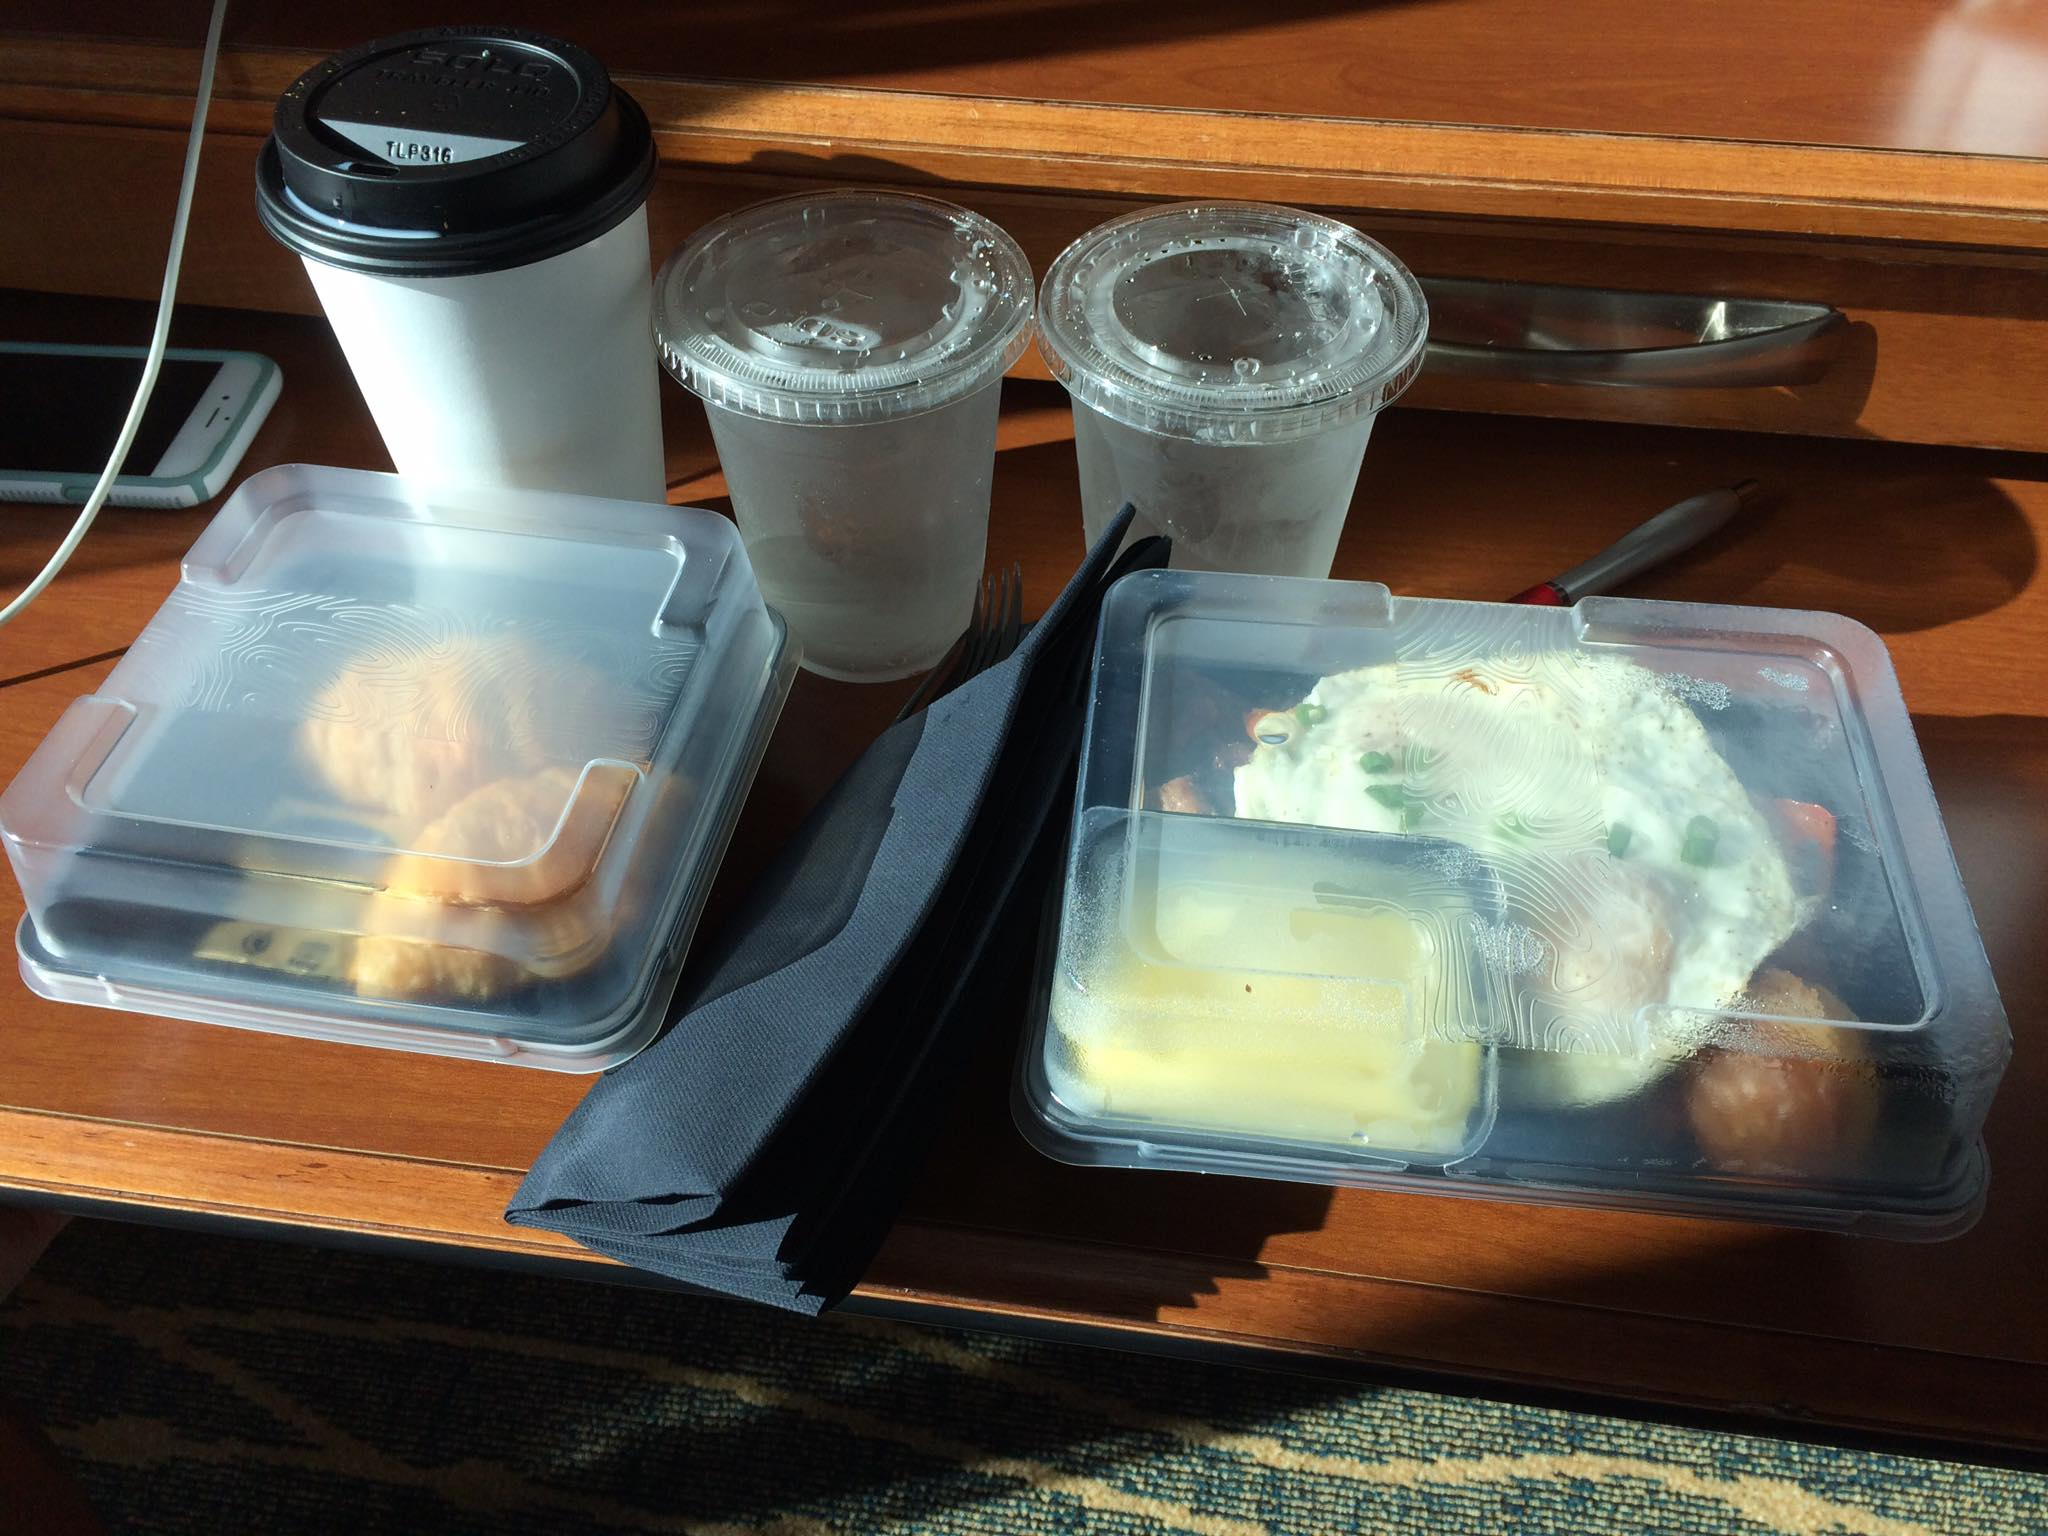 Photo of plastic containers from a Seattle-area Marriott by Raj Mahakul.